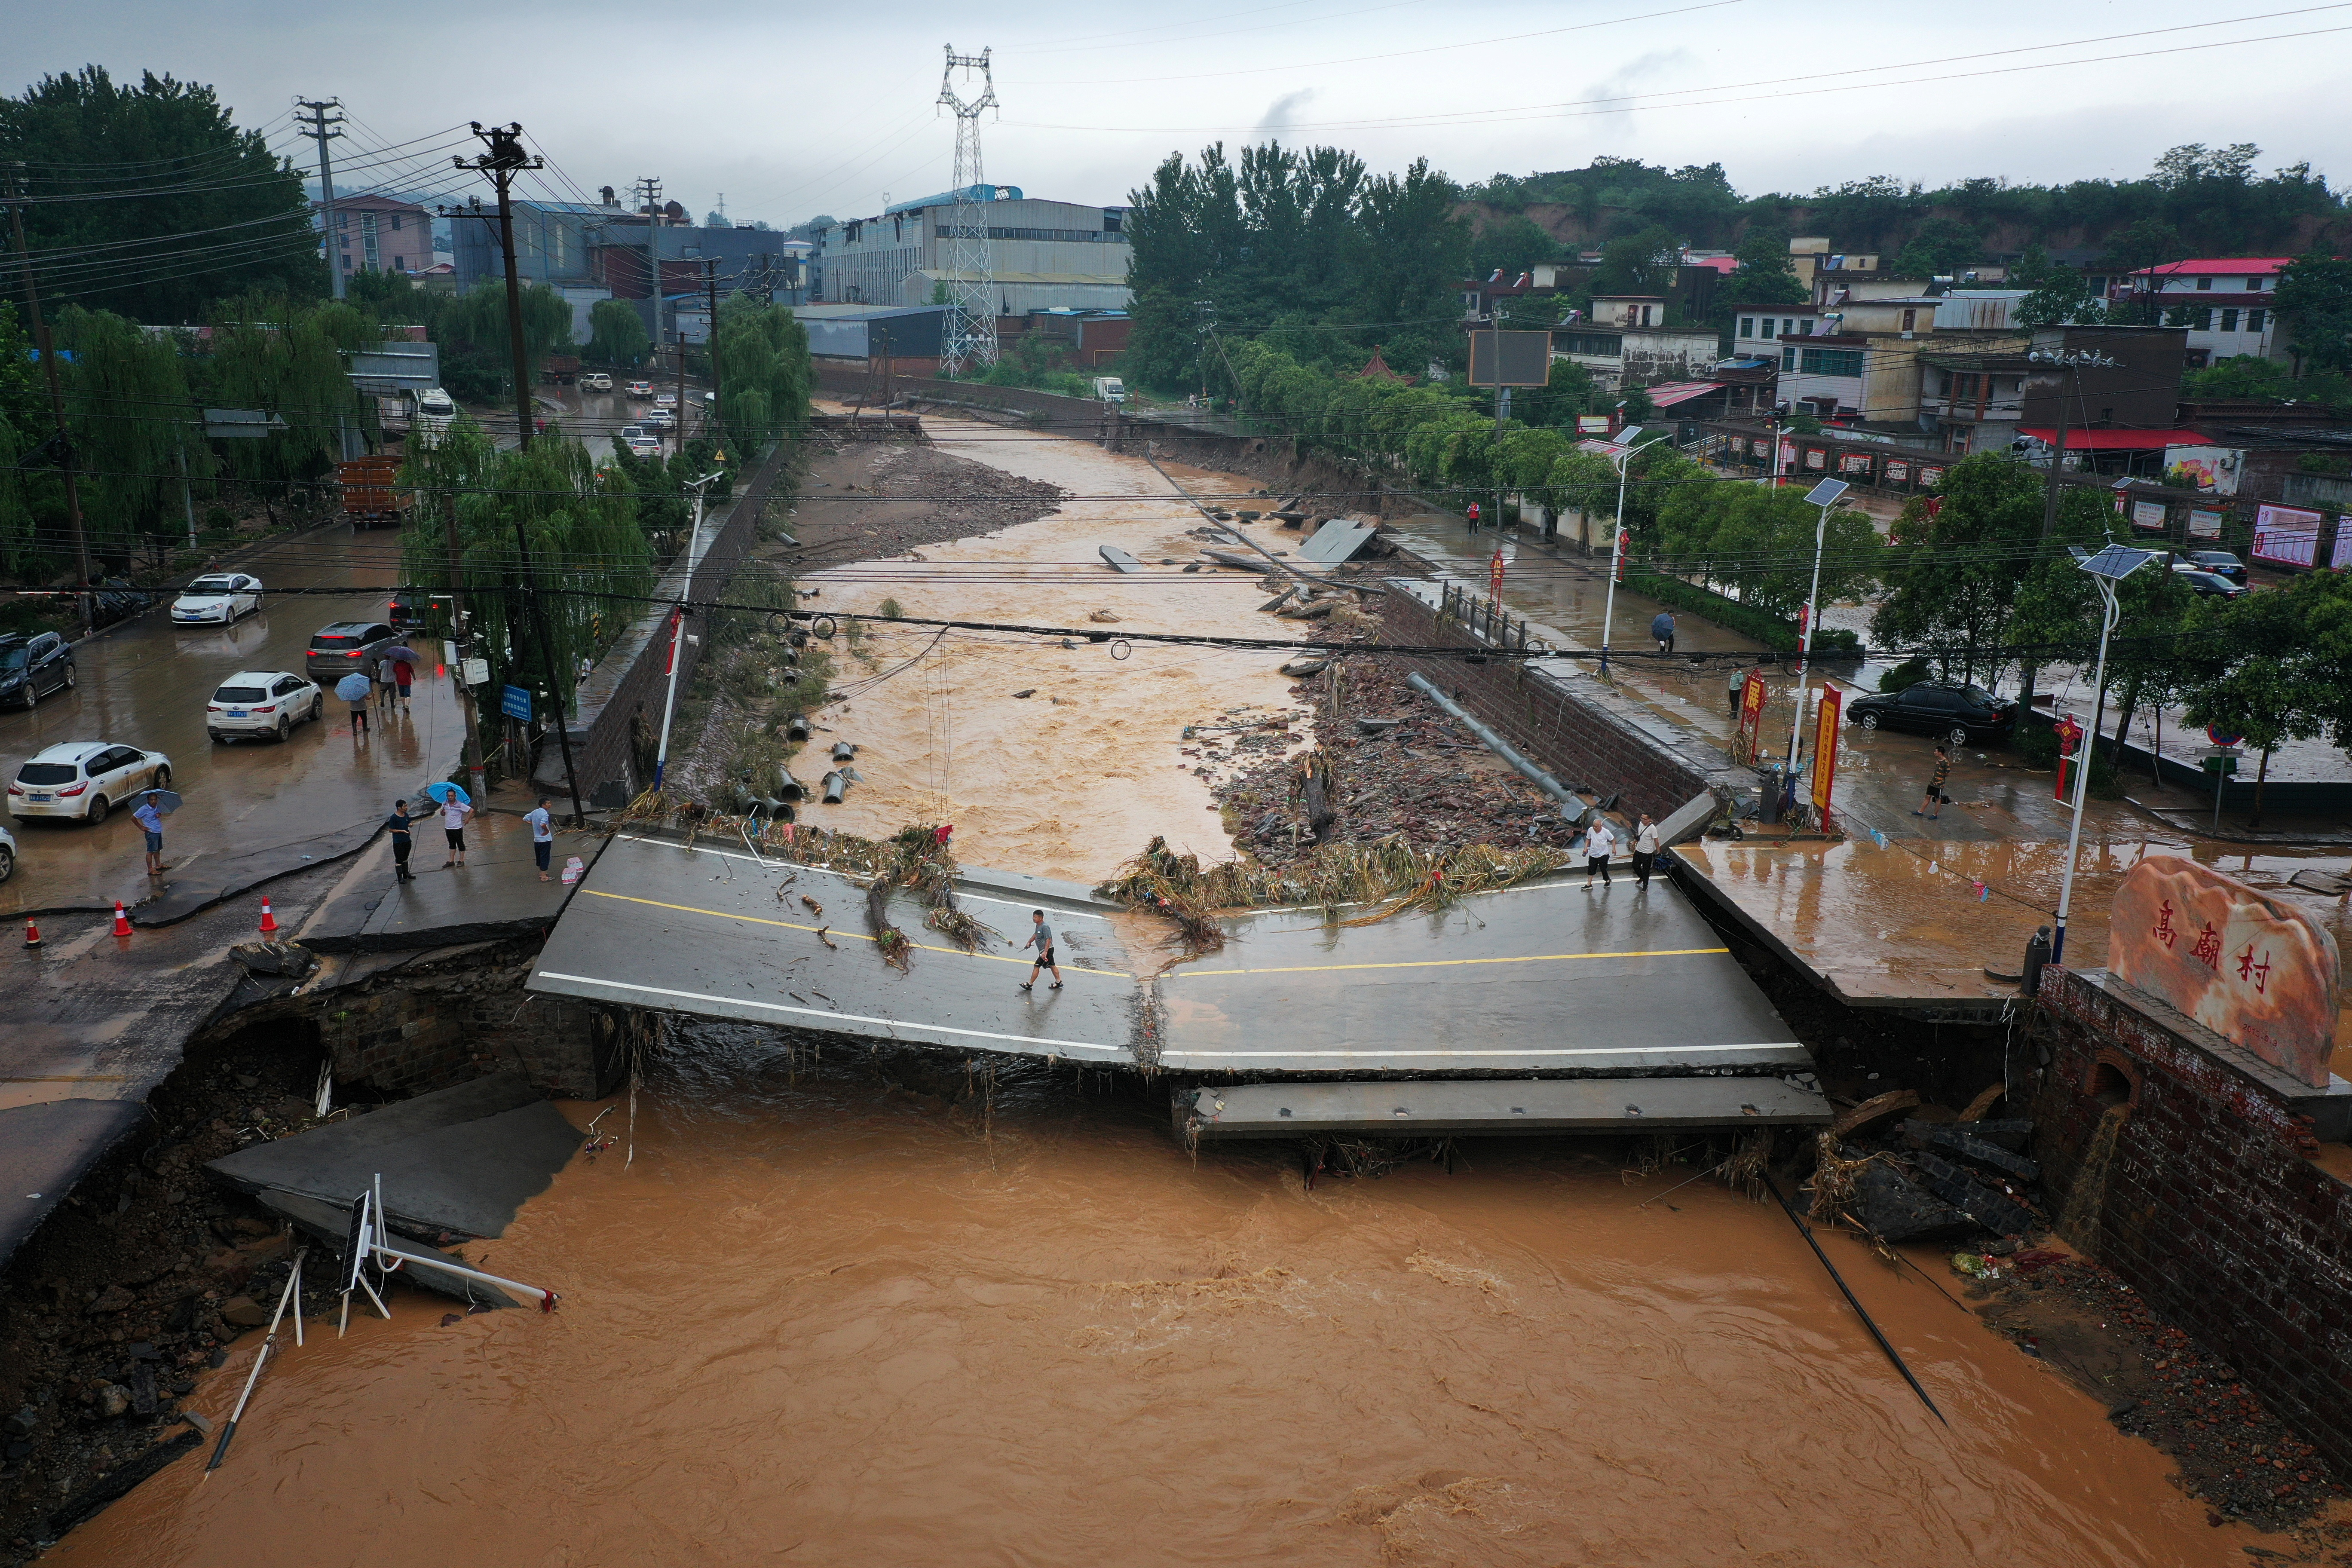 People walk on a damaged bridge after heavy rainfall flooded Gaomiao village of Gongyi in Henan province, China July 21, 2021. Picture taken July 21, 2021 with a drone. China Daily via REUTERS  ATTENTION EDITORS - THIS IMAGE WAS PROVIDED BY A THIRD PARTY. CHINA OUT.